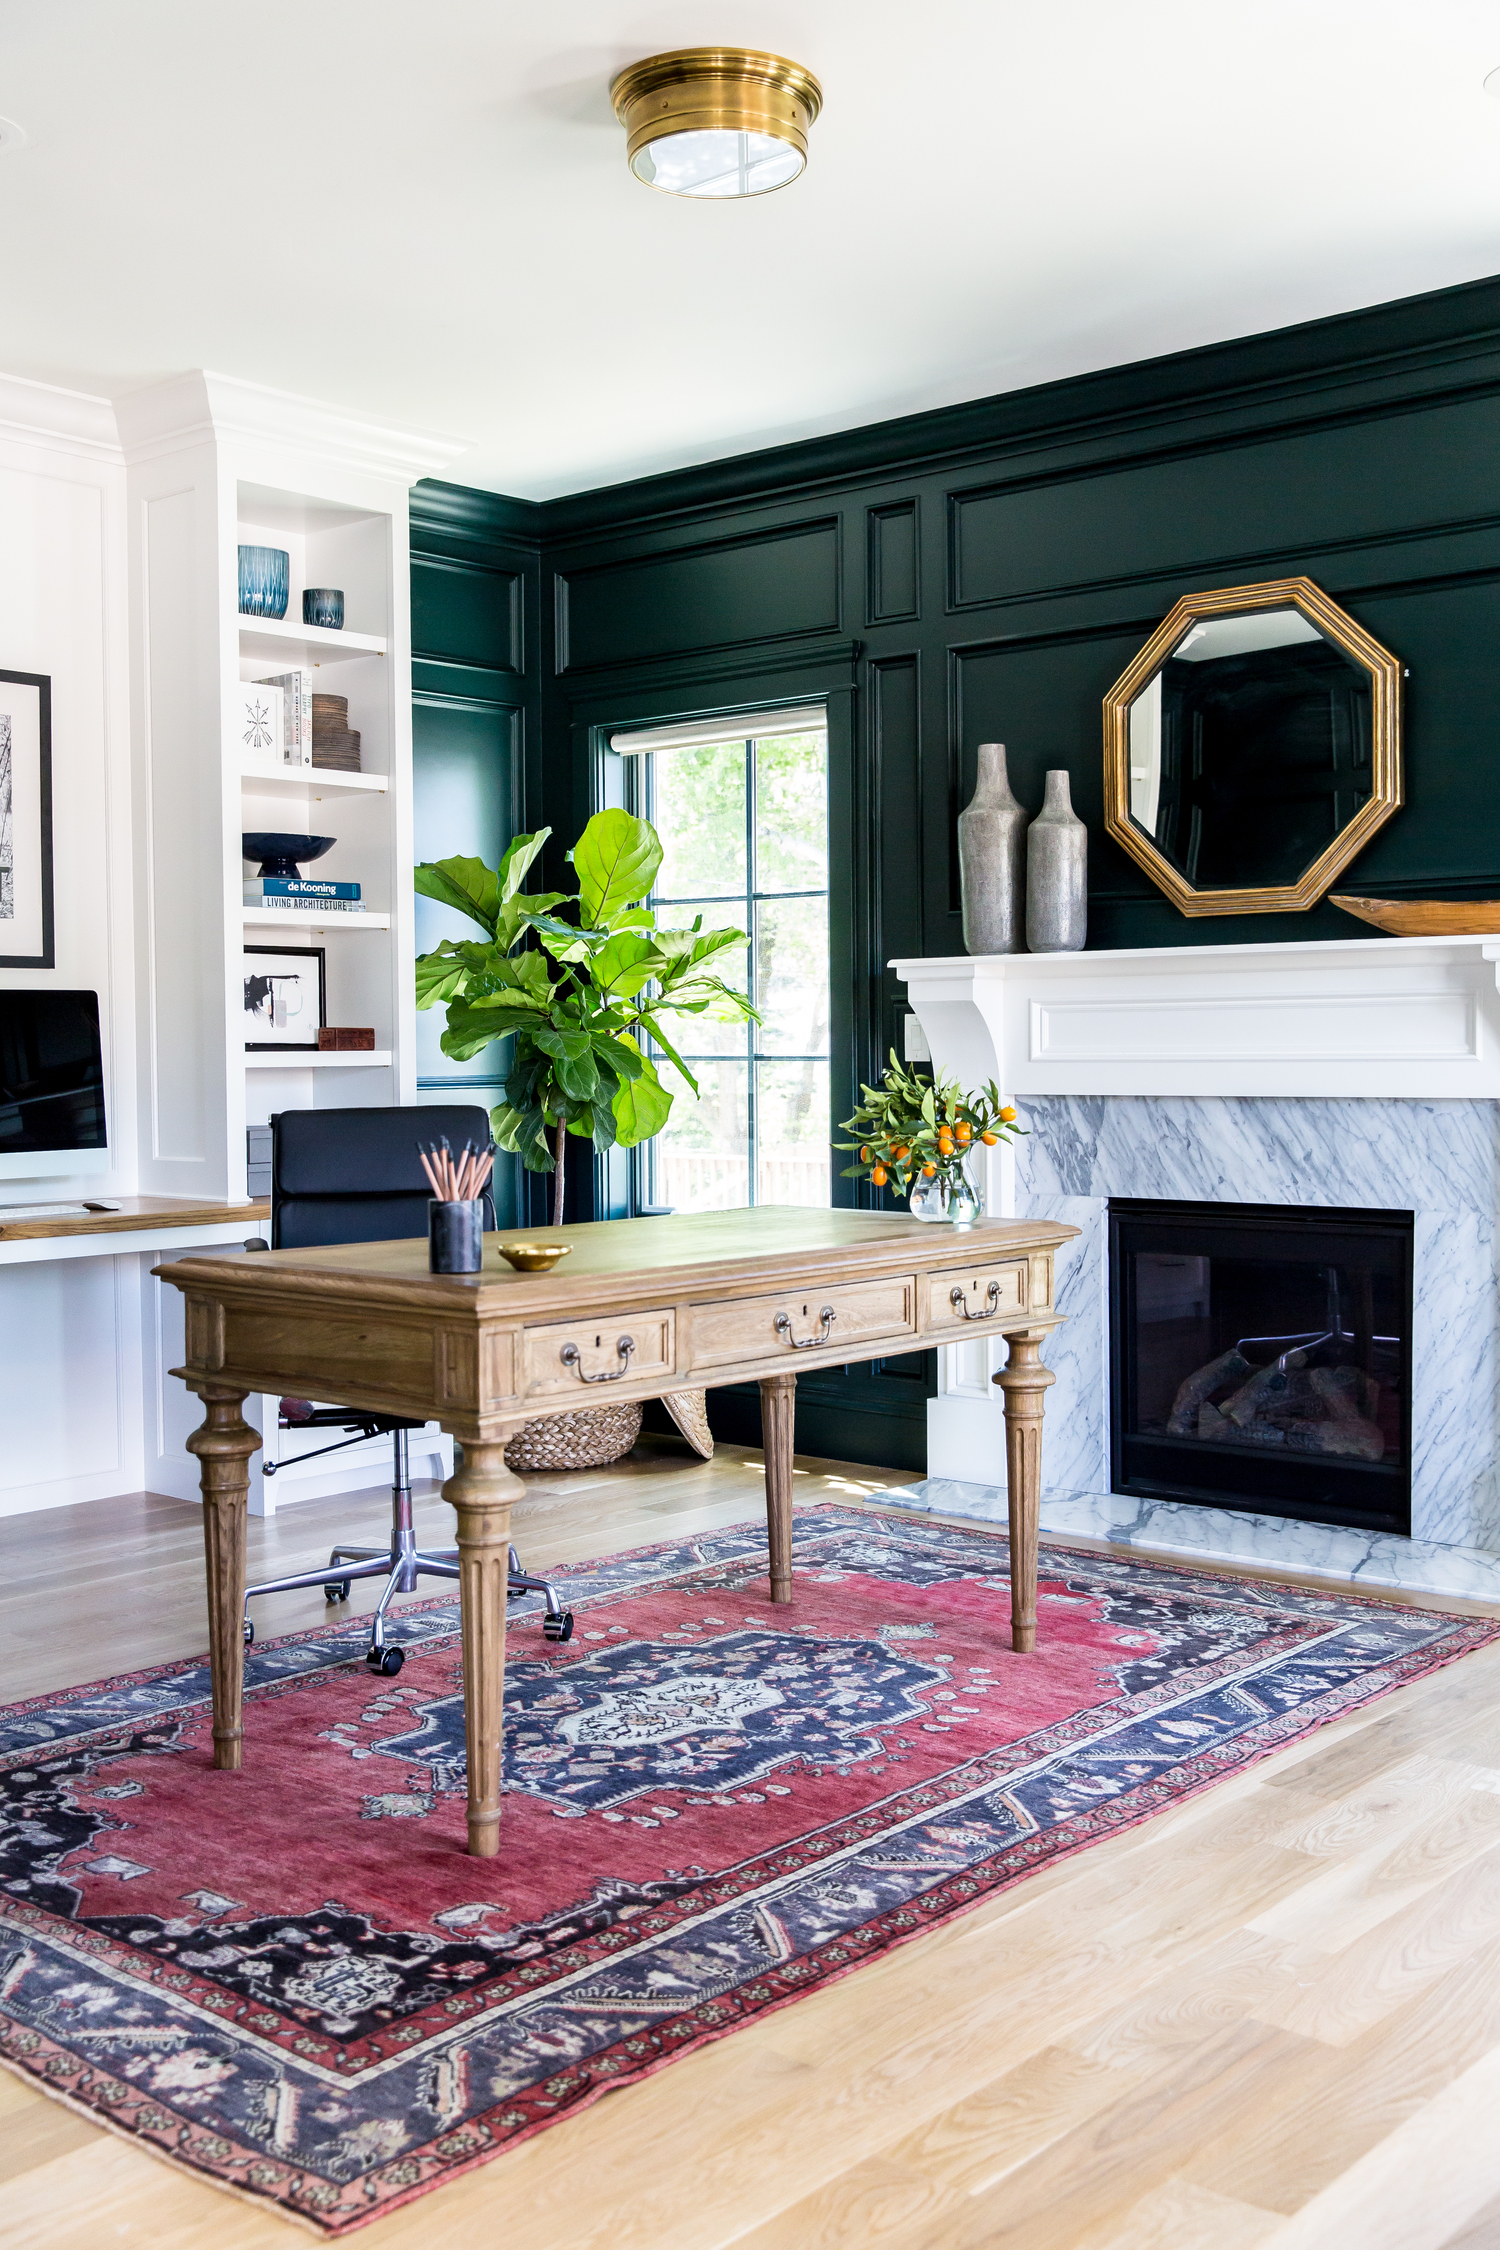 10 Dark Spaces That Will Make You Rethink Those White